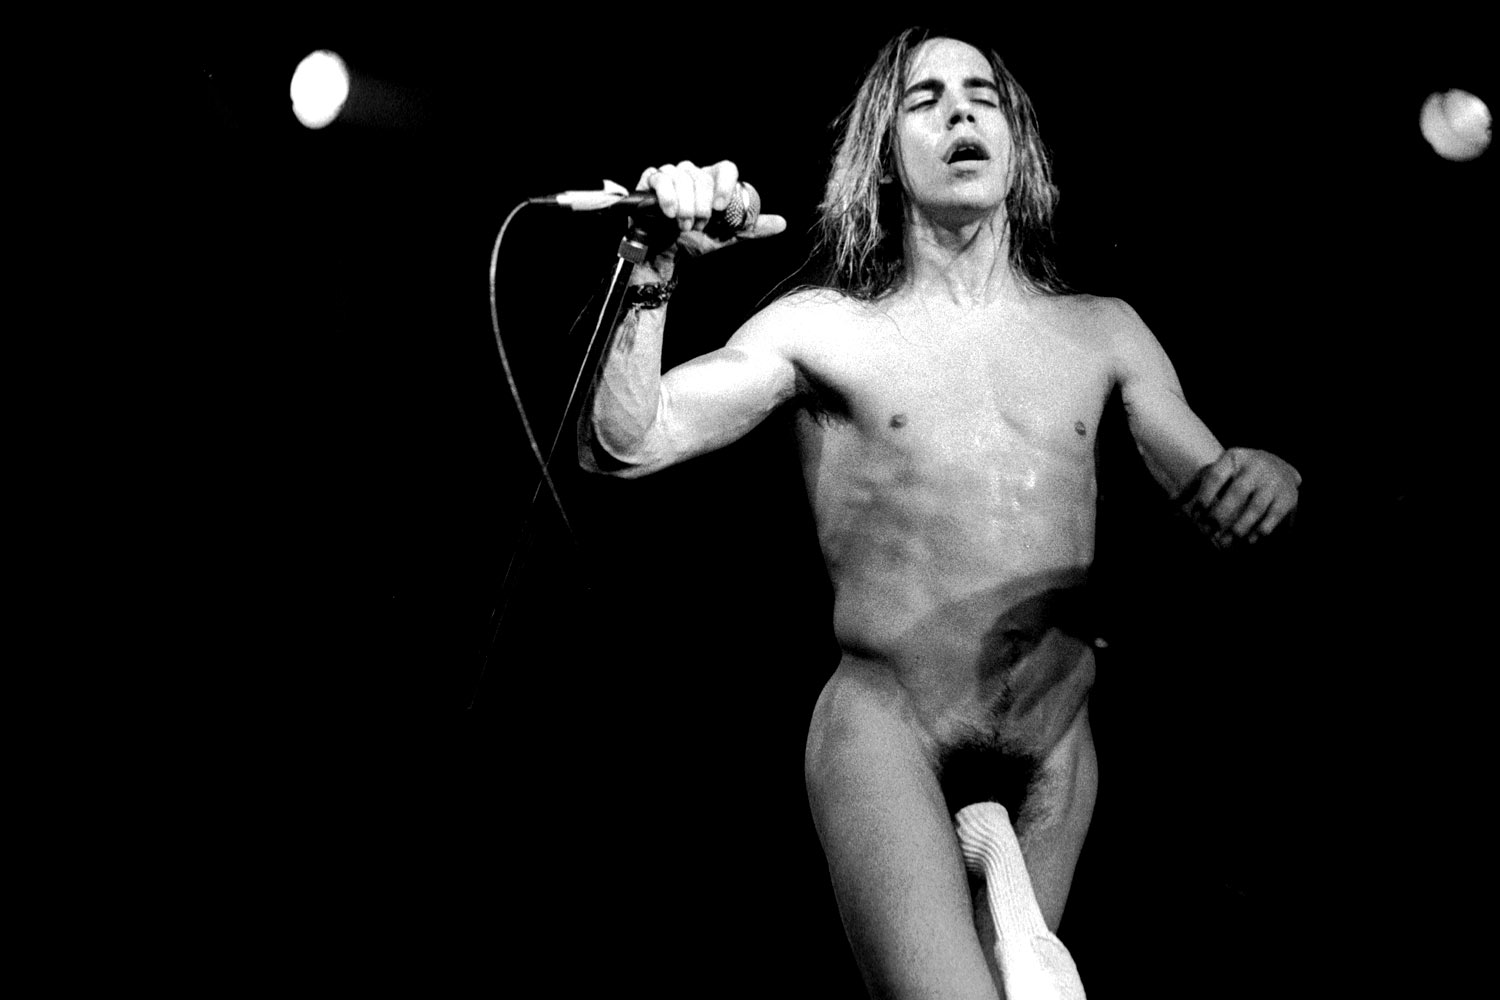 Anthony-Kiedis-of-Red-hot-chilli-peppers_1500a_aol-music-uk_121110